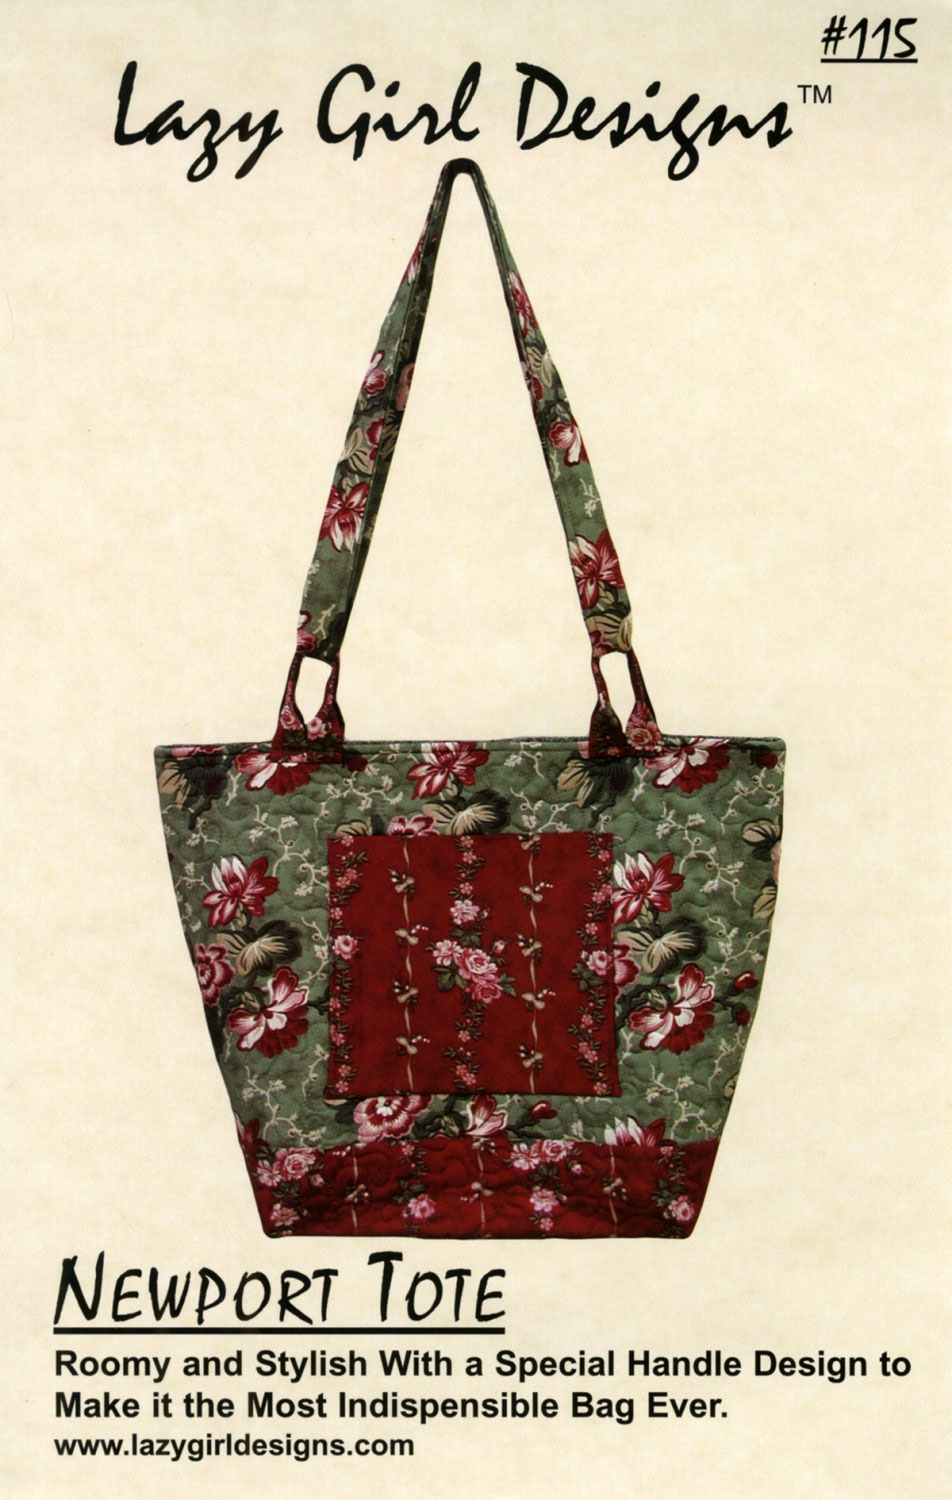 Newport Tote sewing pattern from Lazy Girl Designs